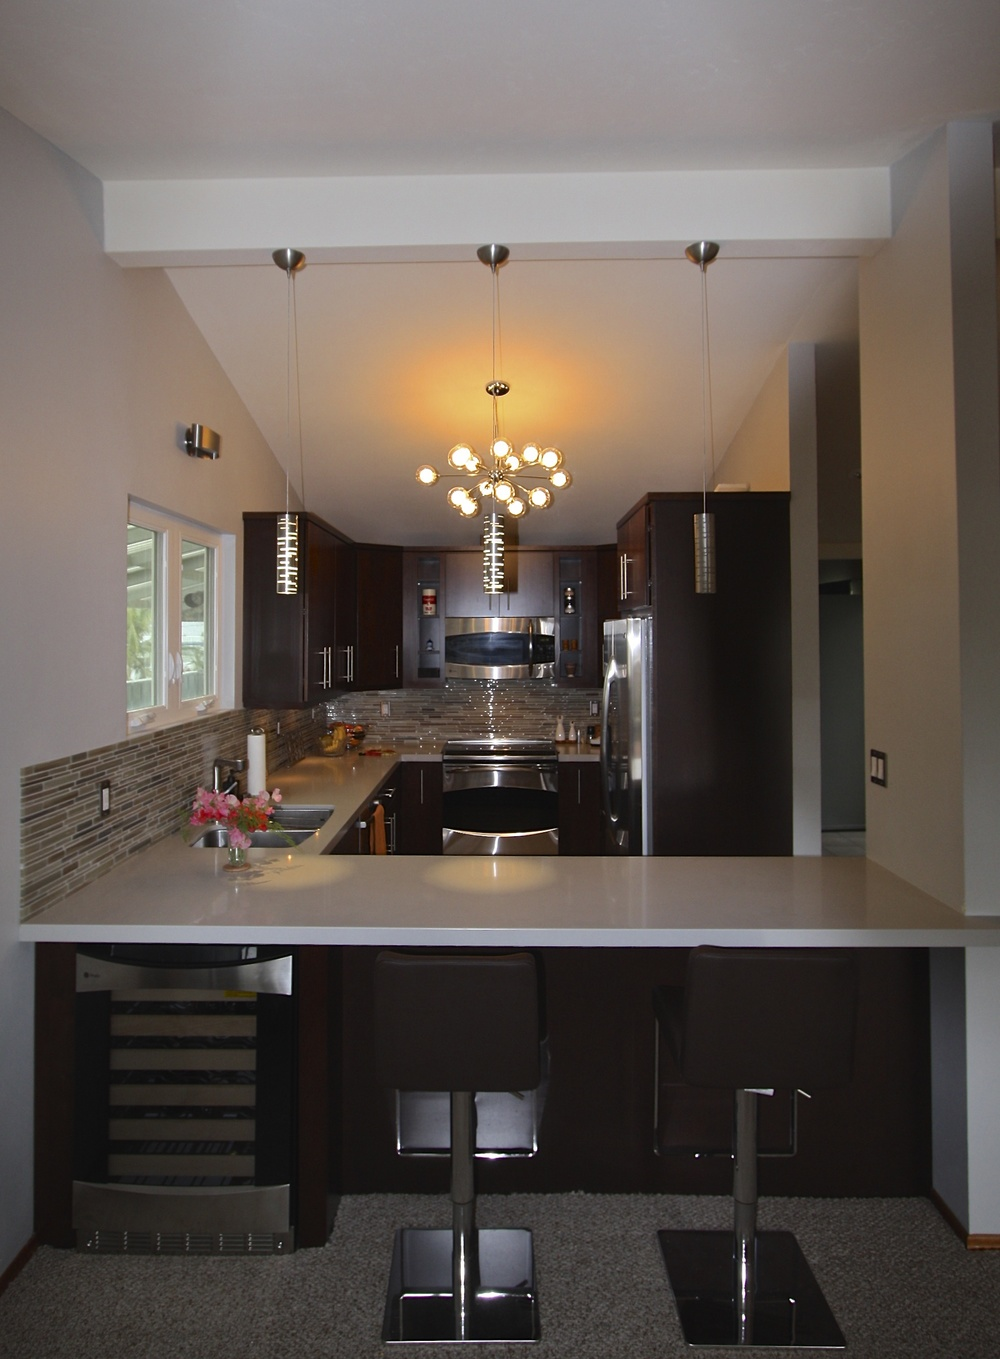 EAB Contemporary Kitchen Remodel 5.jpg